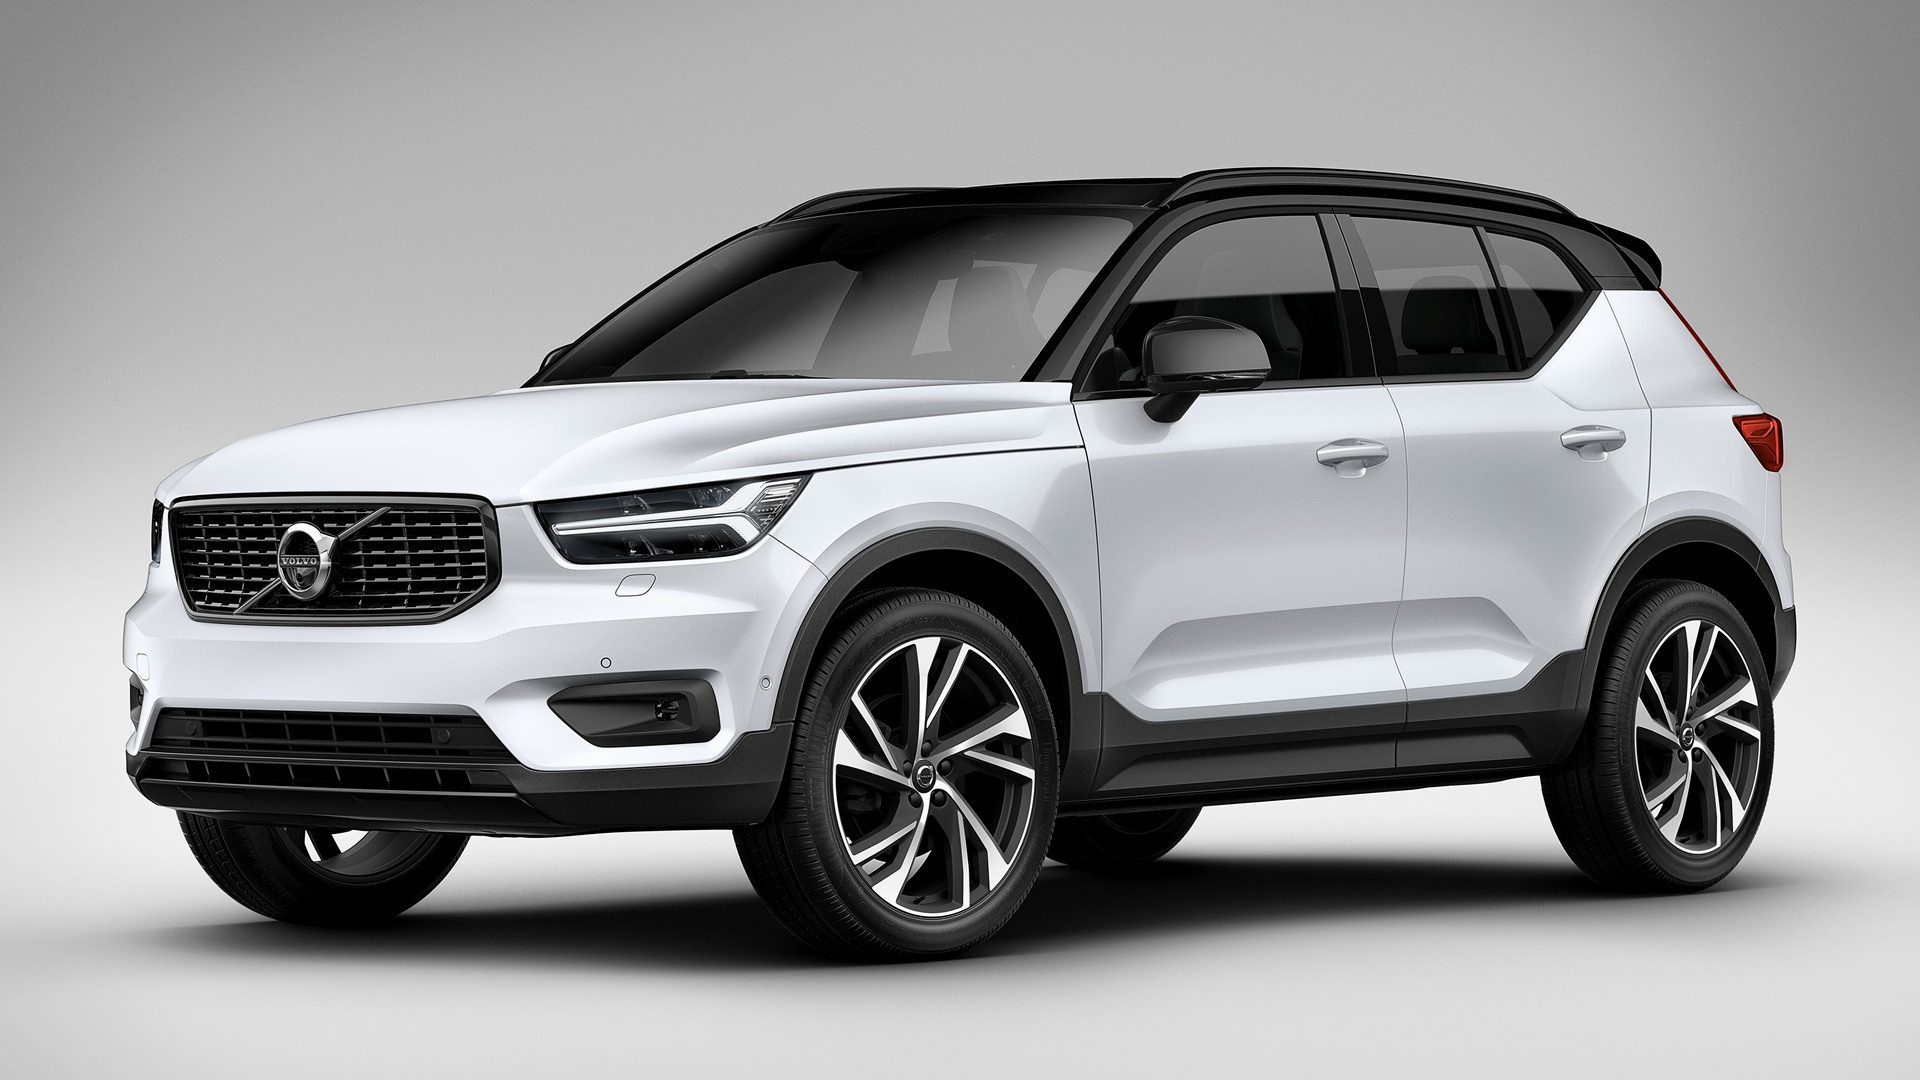 Volvo XC40 R-Design (2017) Wallpapers and HD Images - Car ...